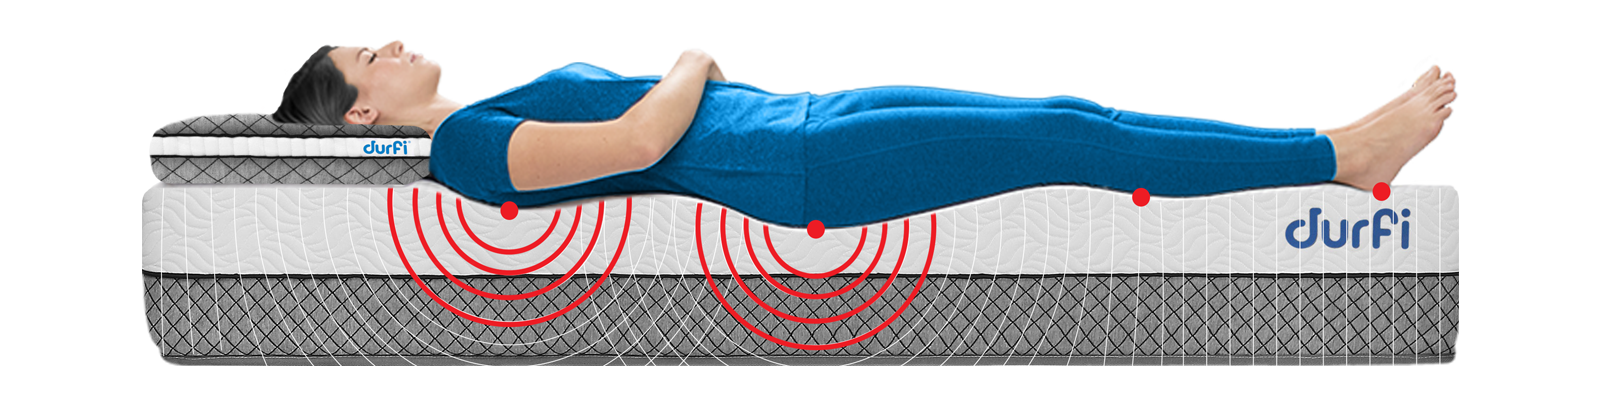 Hybrid Pocket Spring Mattress